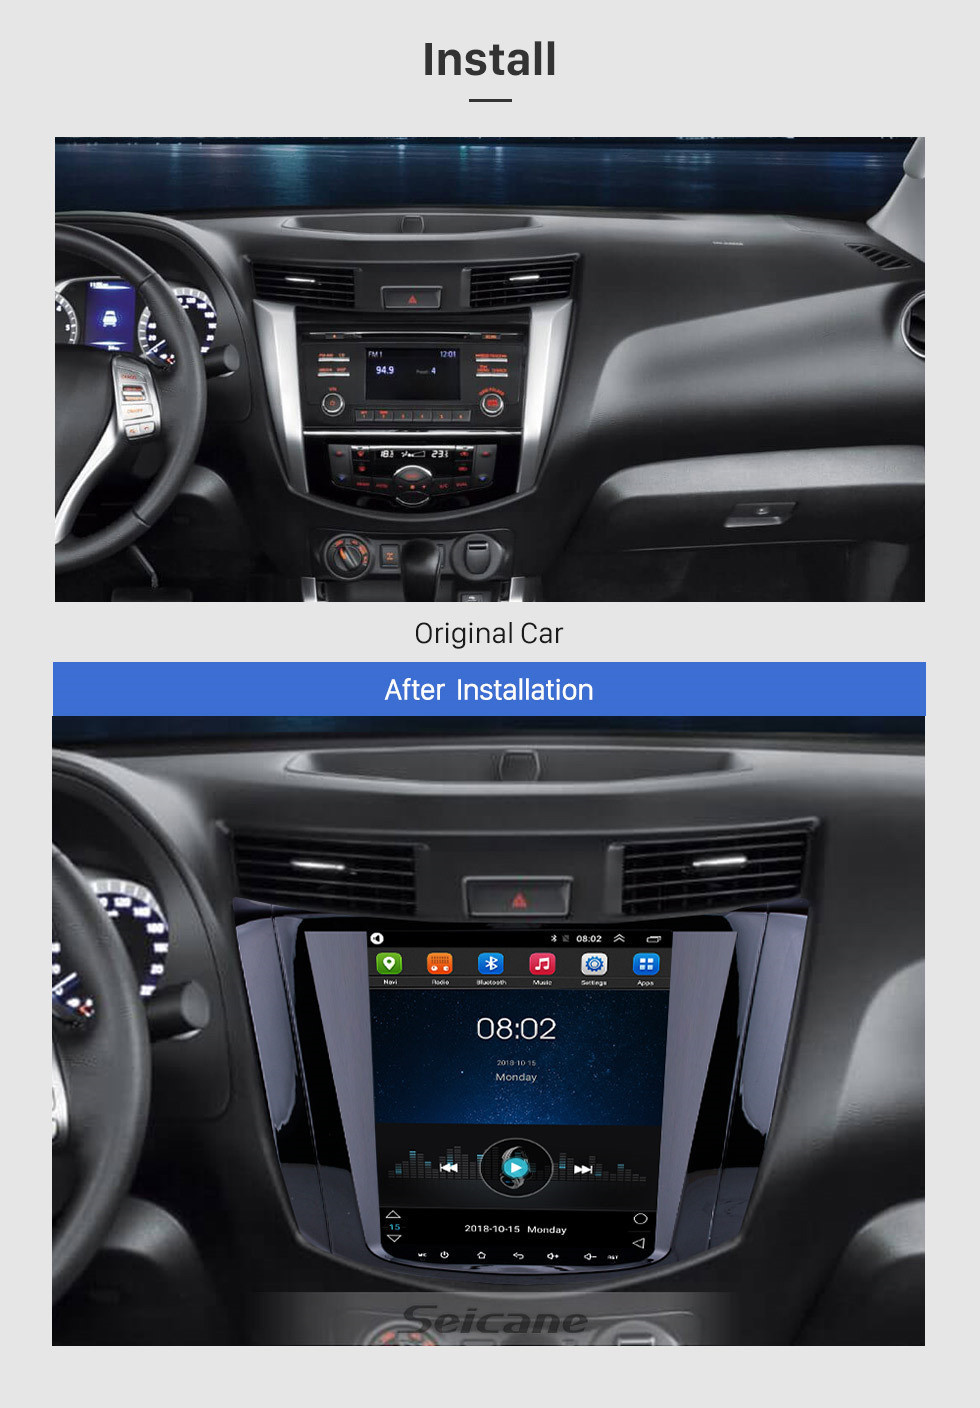 Seicane OEM HD Touchscreen 9.7 inch Android 6.0 Radio for 2018 Nissan NAVARA Terra with GPS Navi System Mirror link Bluetooth music WIFI support 3G OBD2 DVR SWC